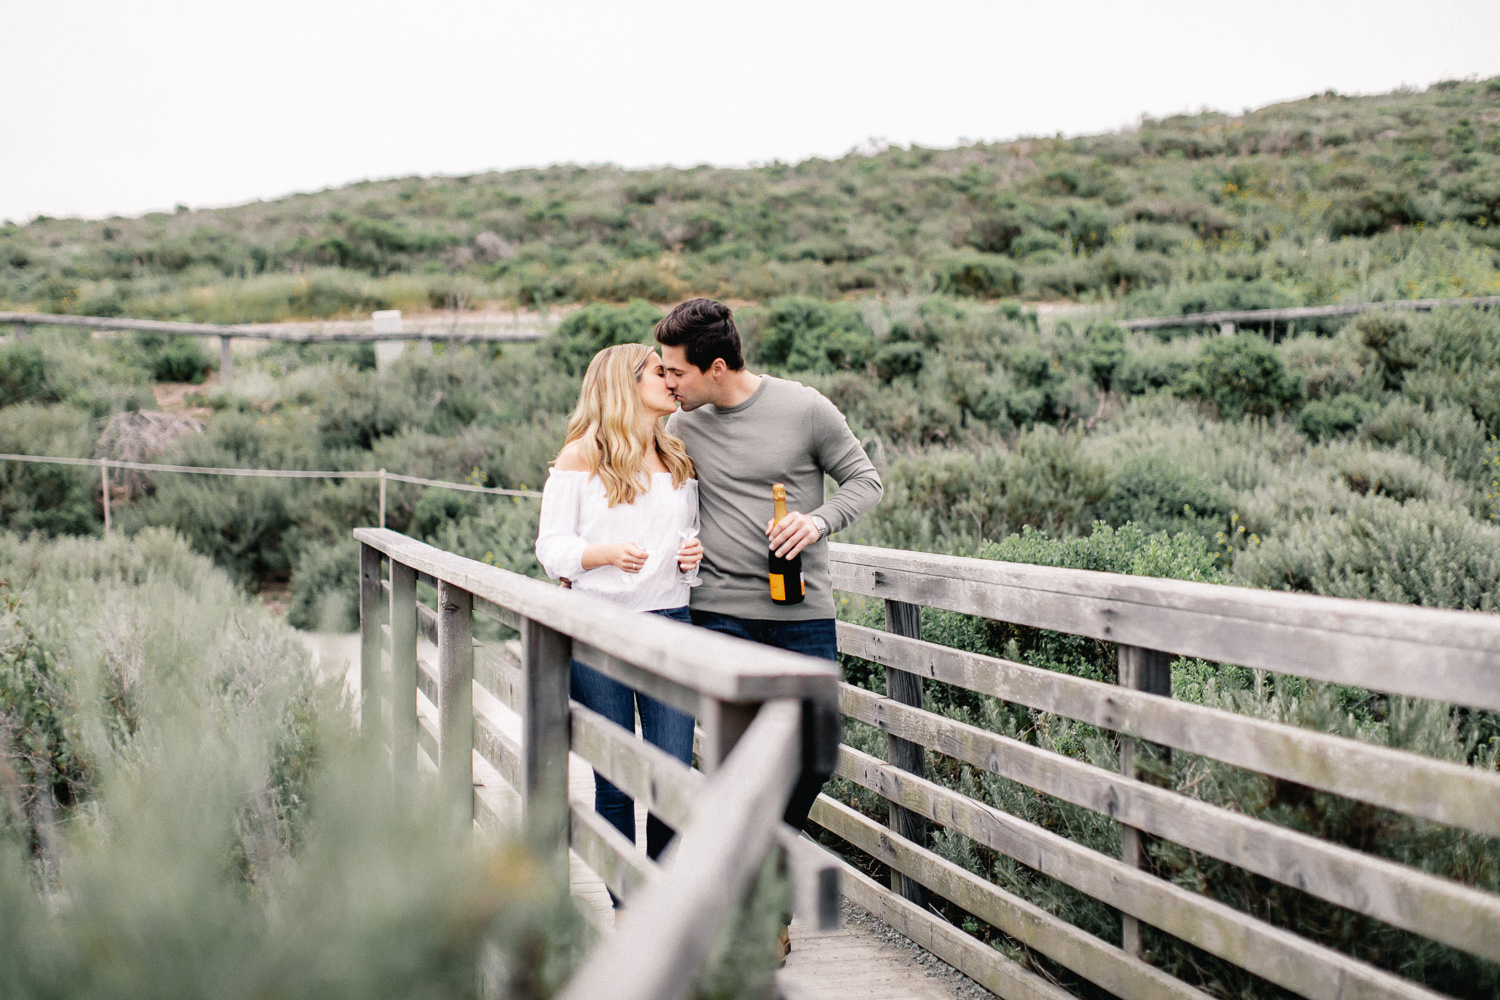 Ashley-Rae-Studio-San-Luis-Obispo-Engagement-Session-Santa-Barbara-Wedding-Photographer-179.jpg